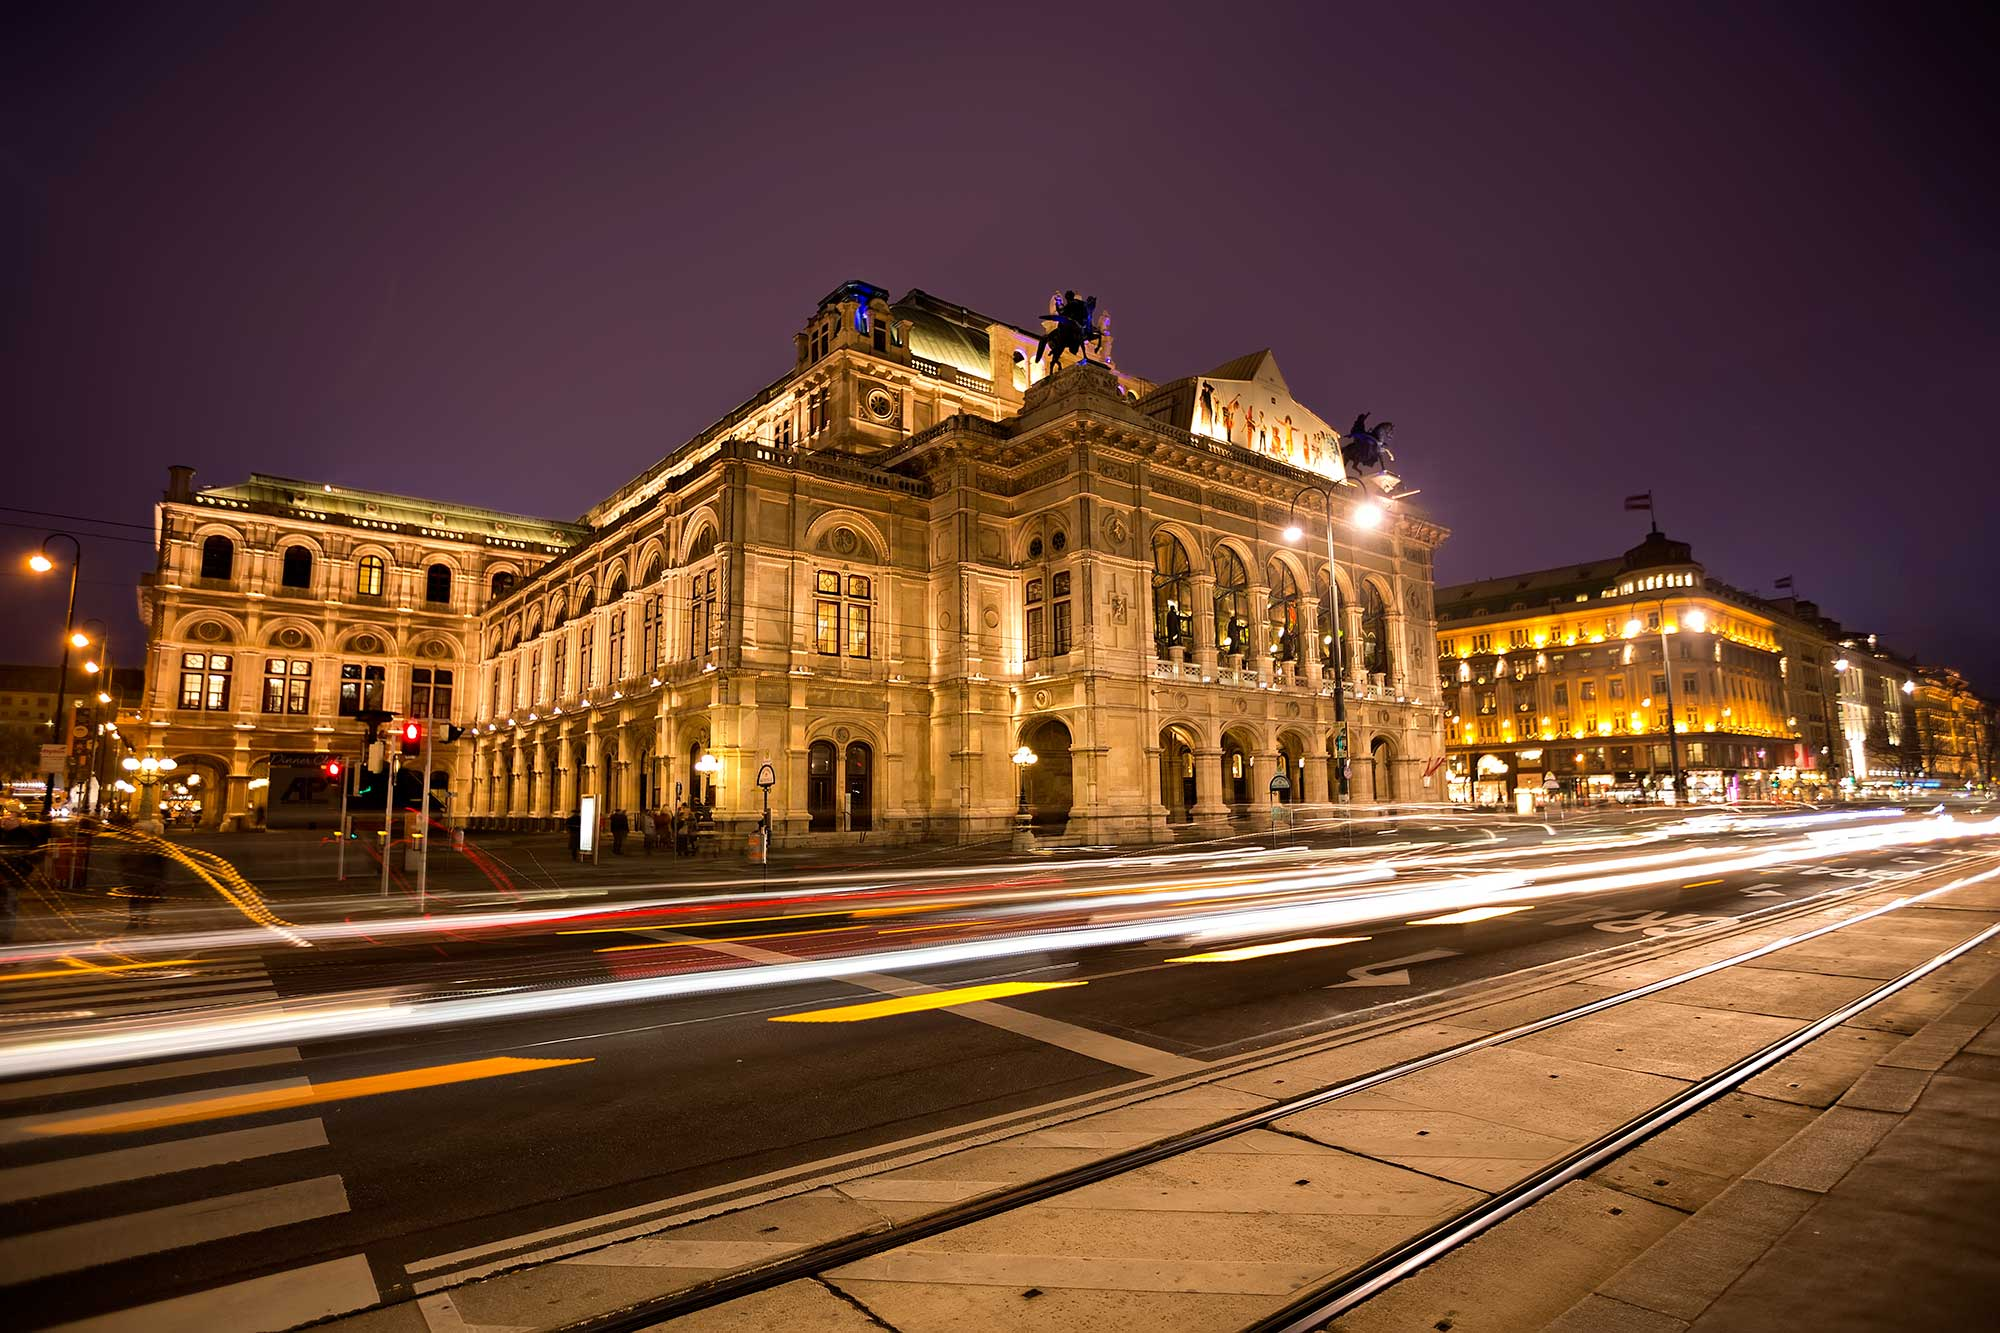 9 places you must visit when in vienna austria travel photography blog by nisa maier and ulli maier - Must See Wien